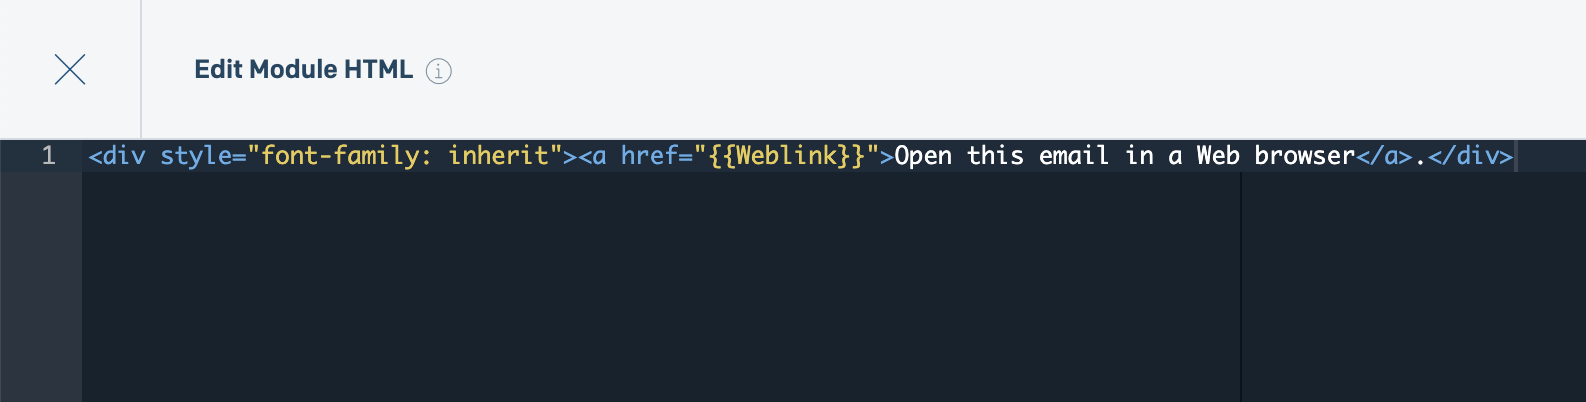 A module's code editor interface with {{Weblink}} assigned to an href attribute